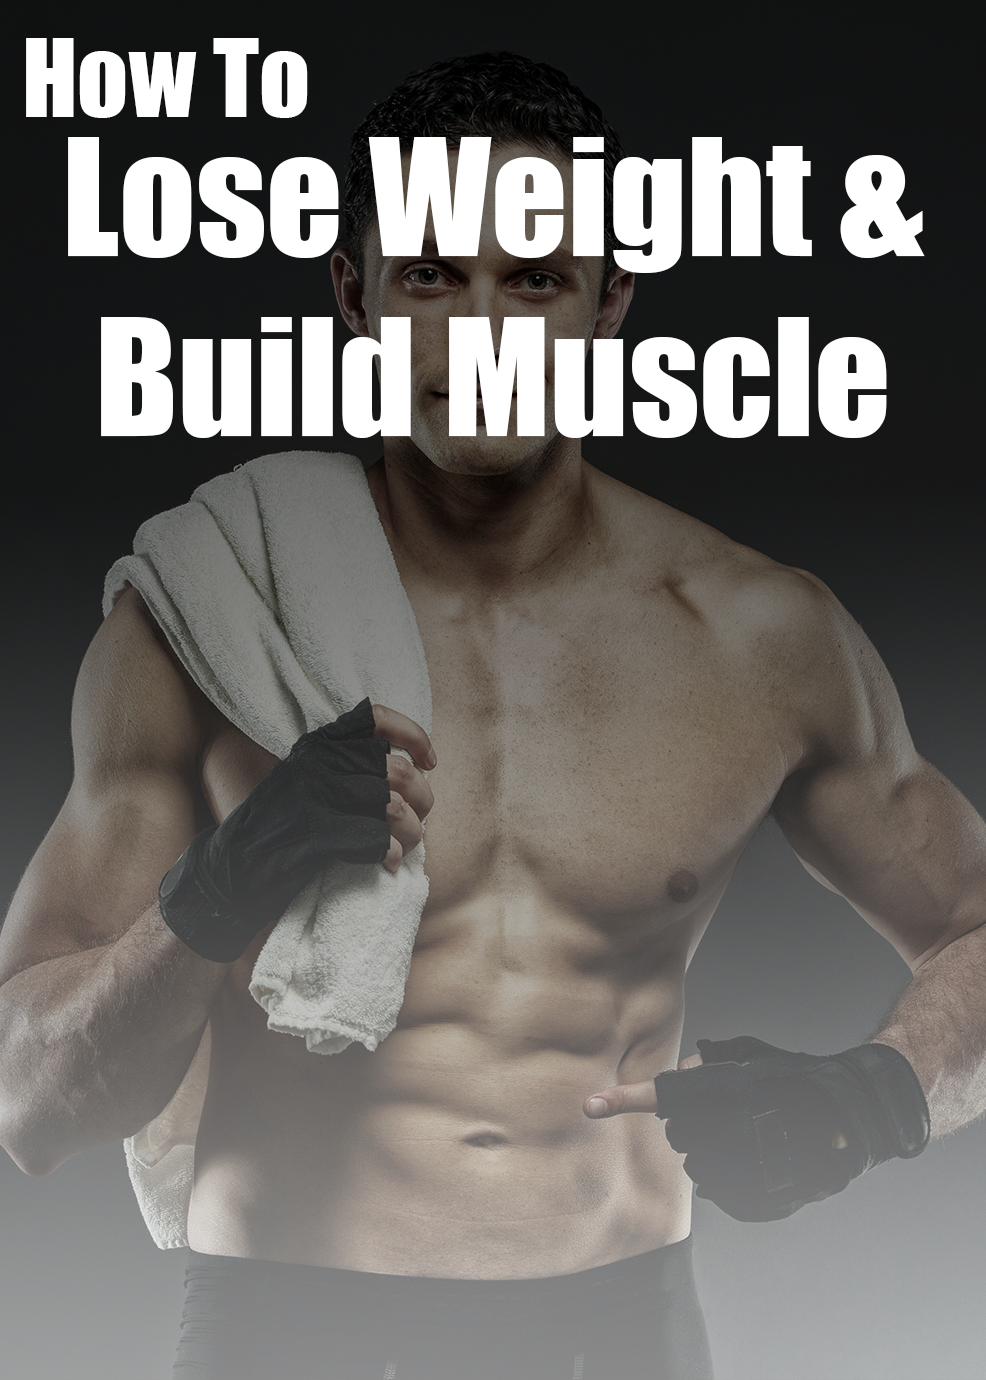 How To Lose Weight Build Muscle